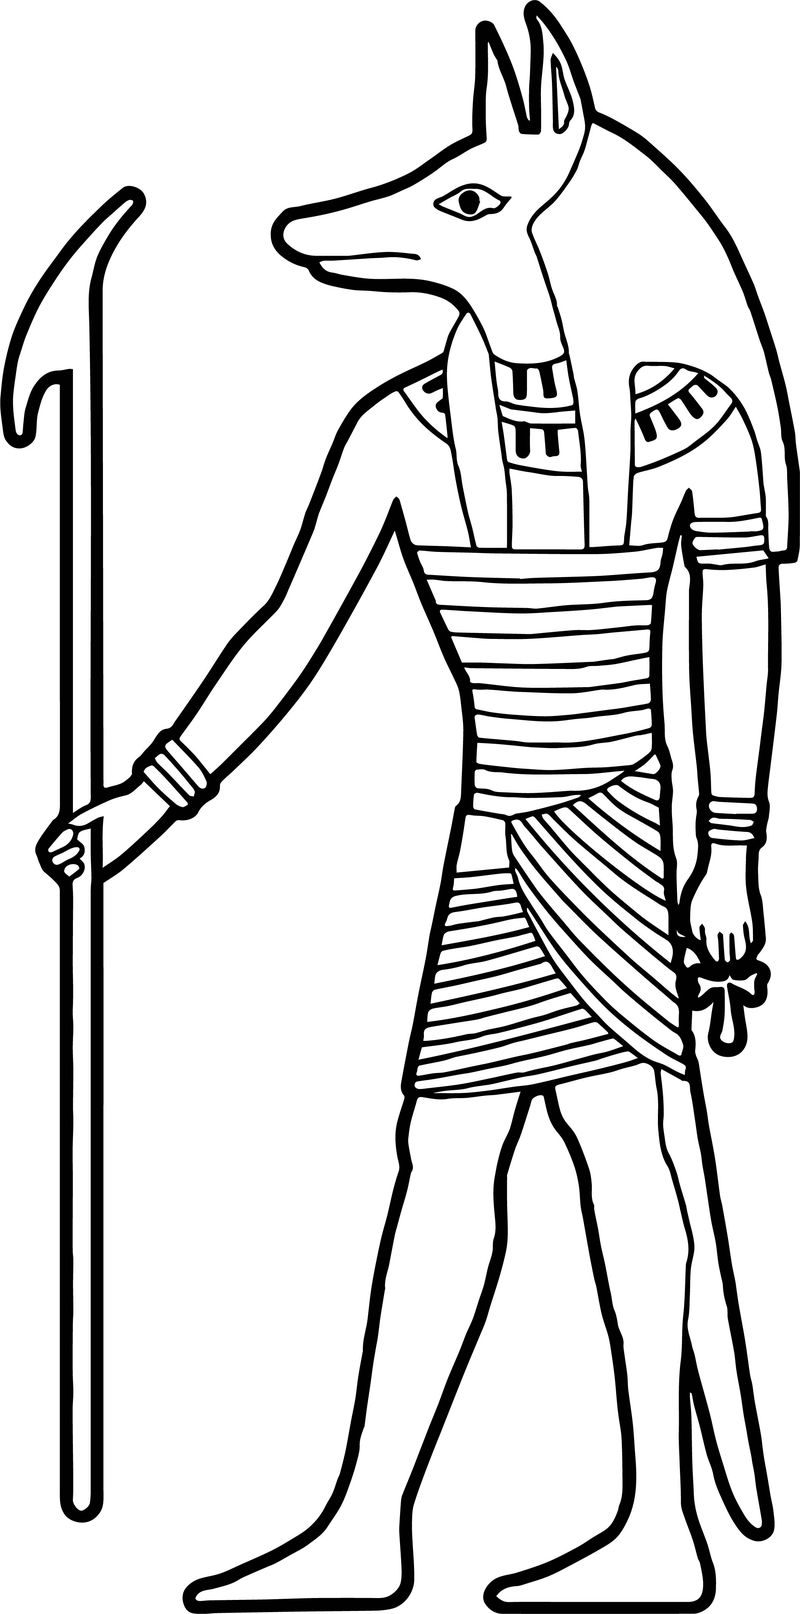 Ancient Egypt Animal Face Statue Coloring Page